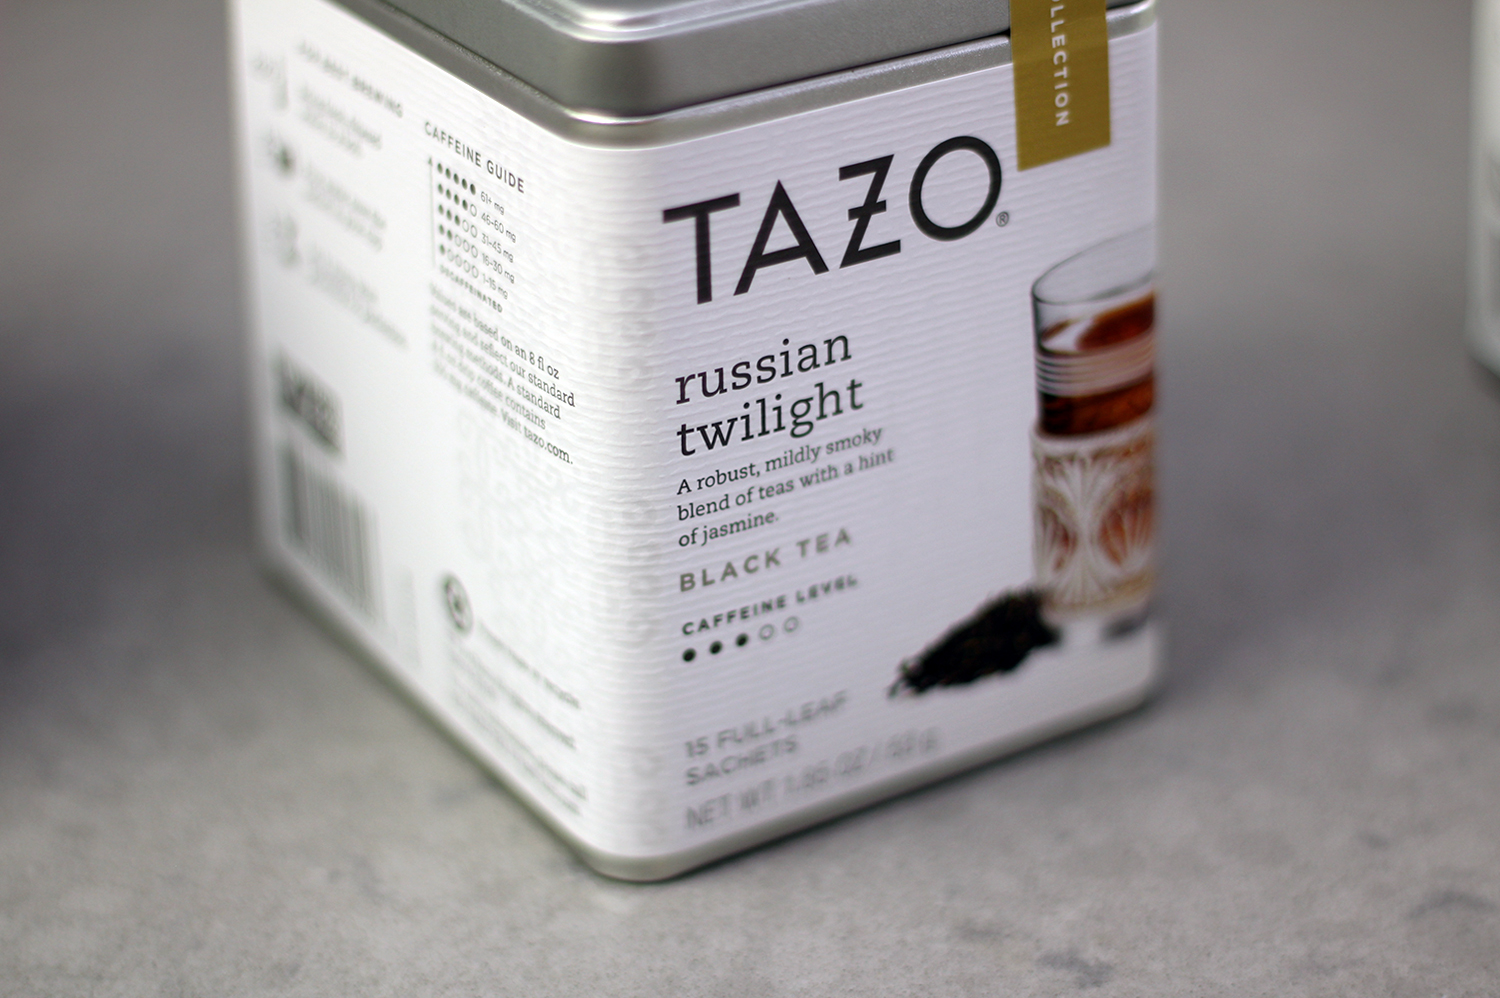 tazo-gt-russian-close-up.jpg